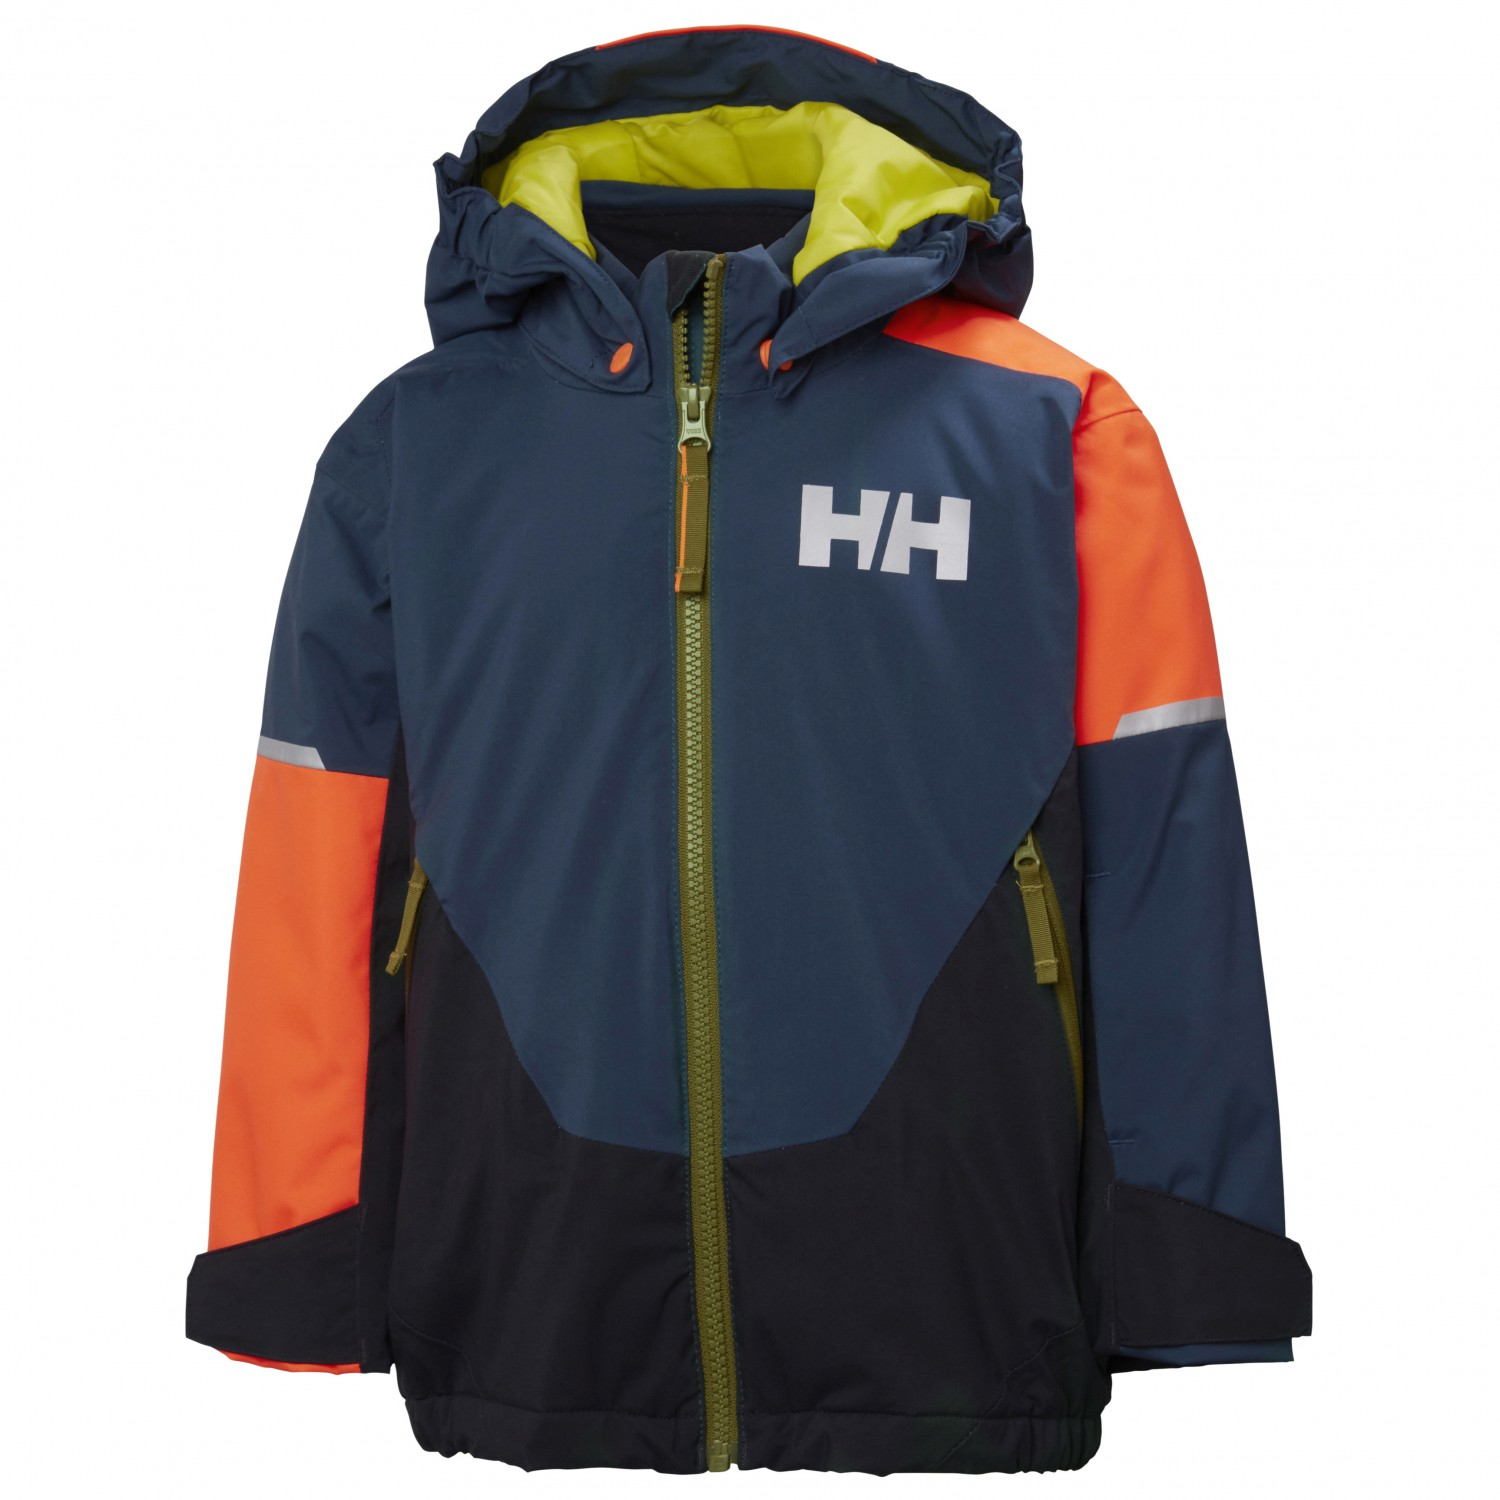 Helly Hansen Ski Rider Enfant Veste Insulated De Jacket ddnr8wqx6